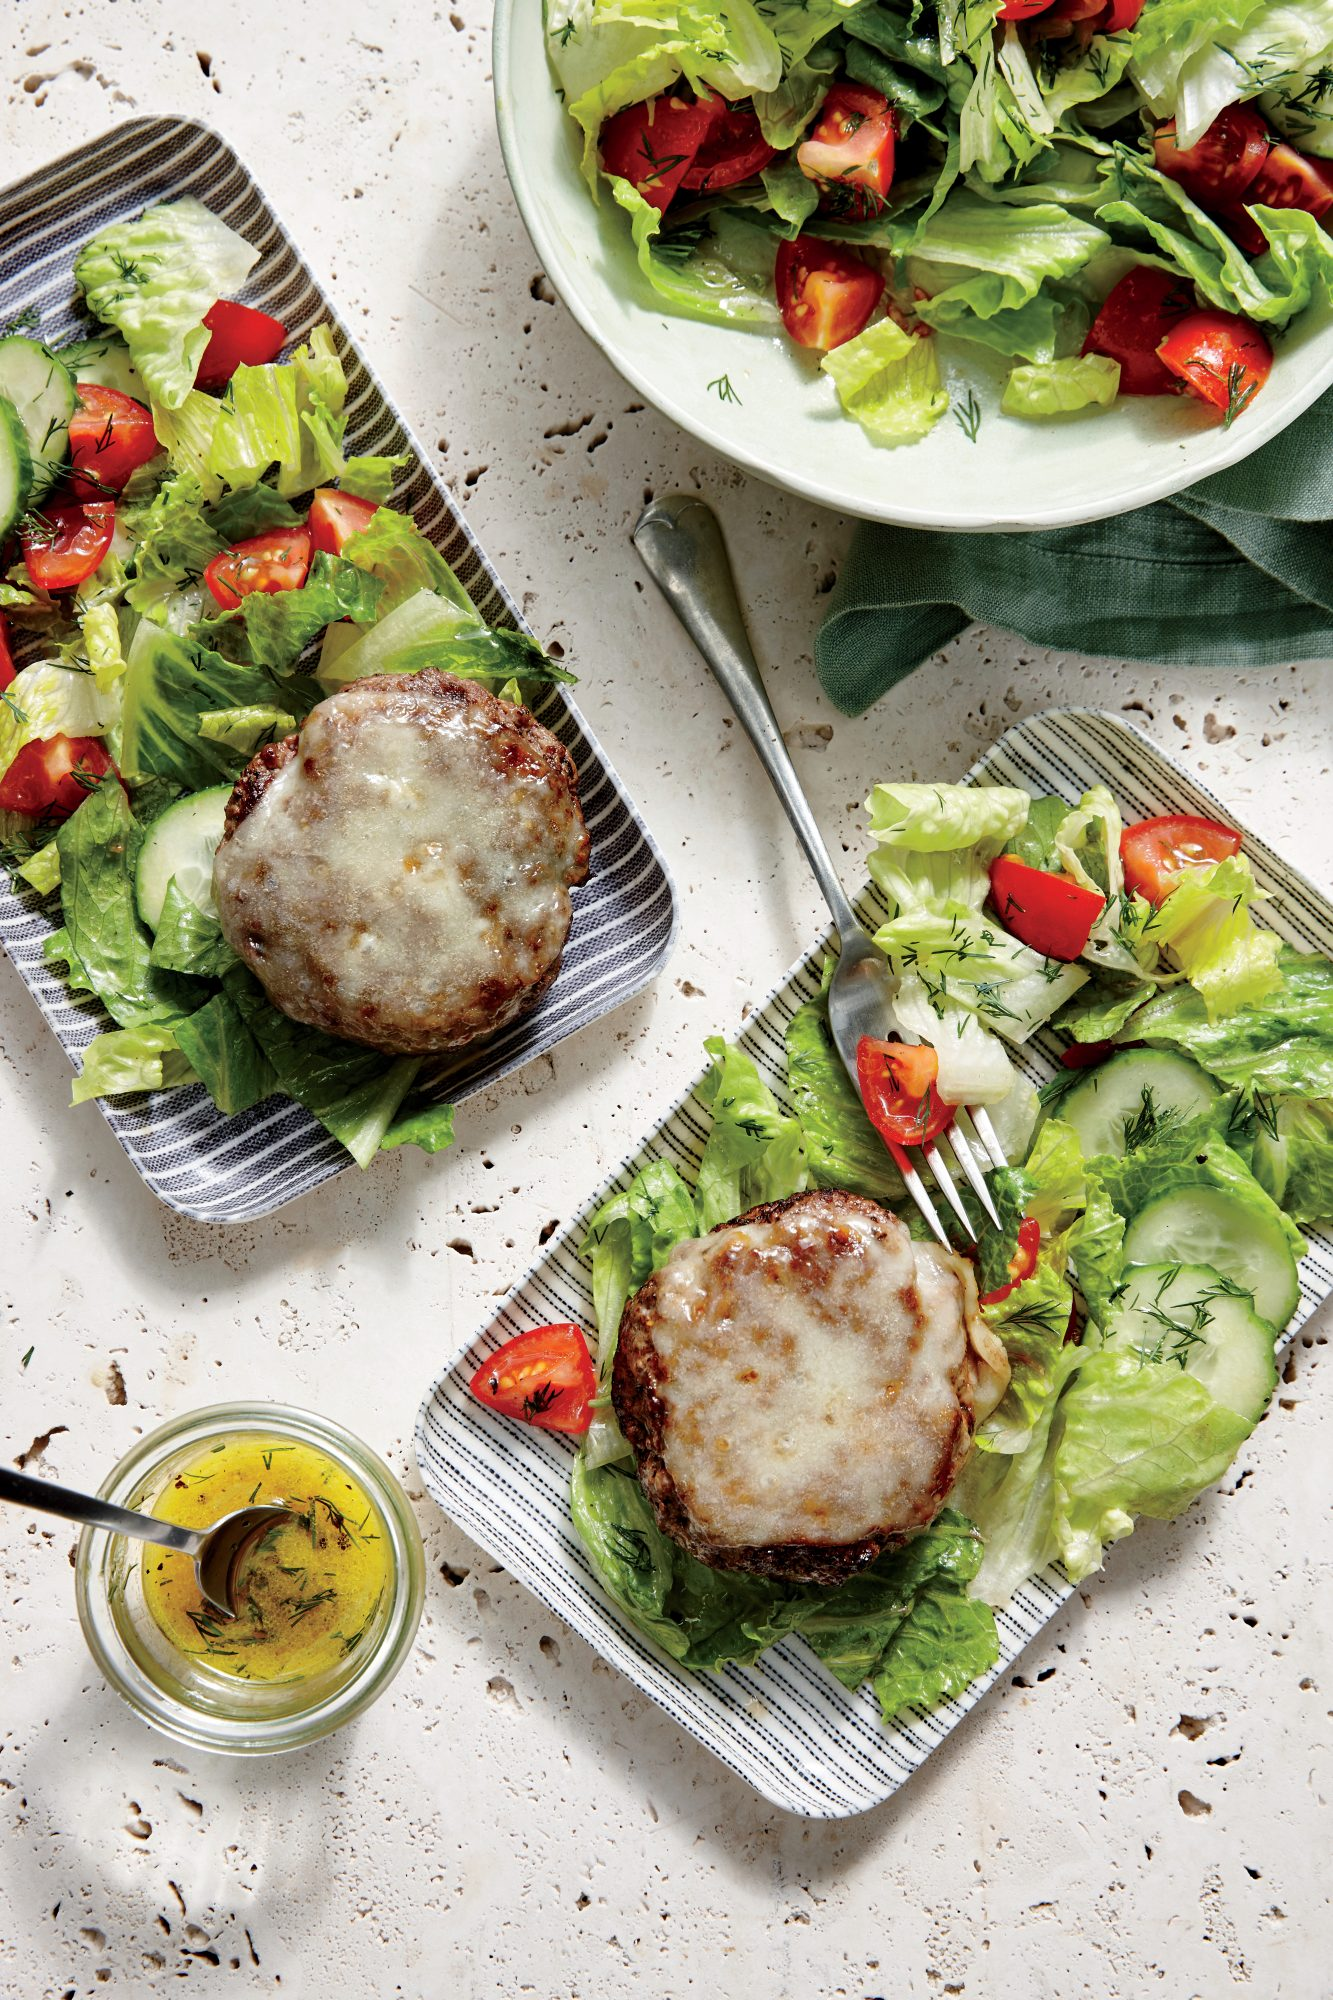 Cheesy Beef Patties with Tomato-Cucumber Salad